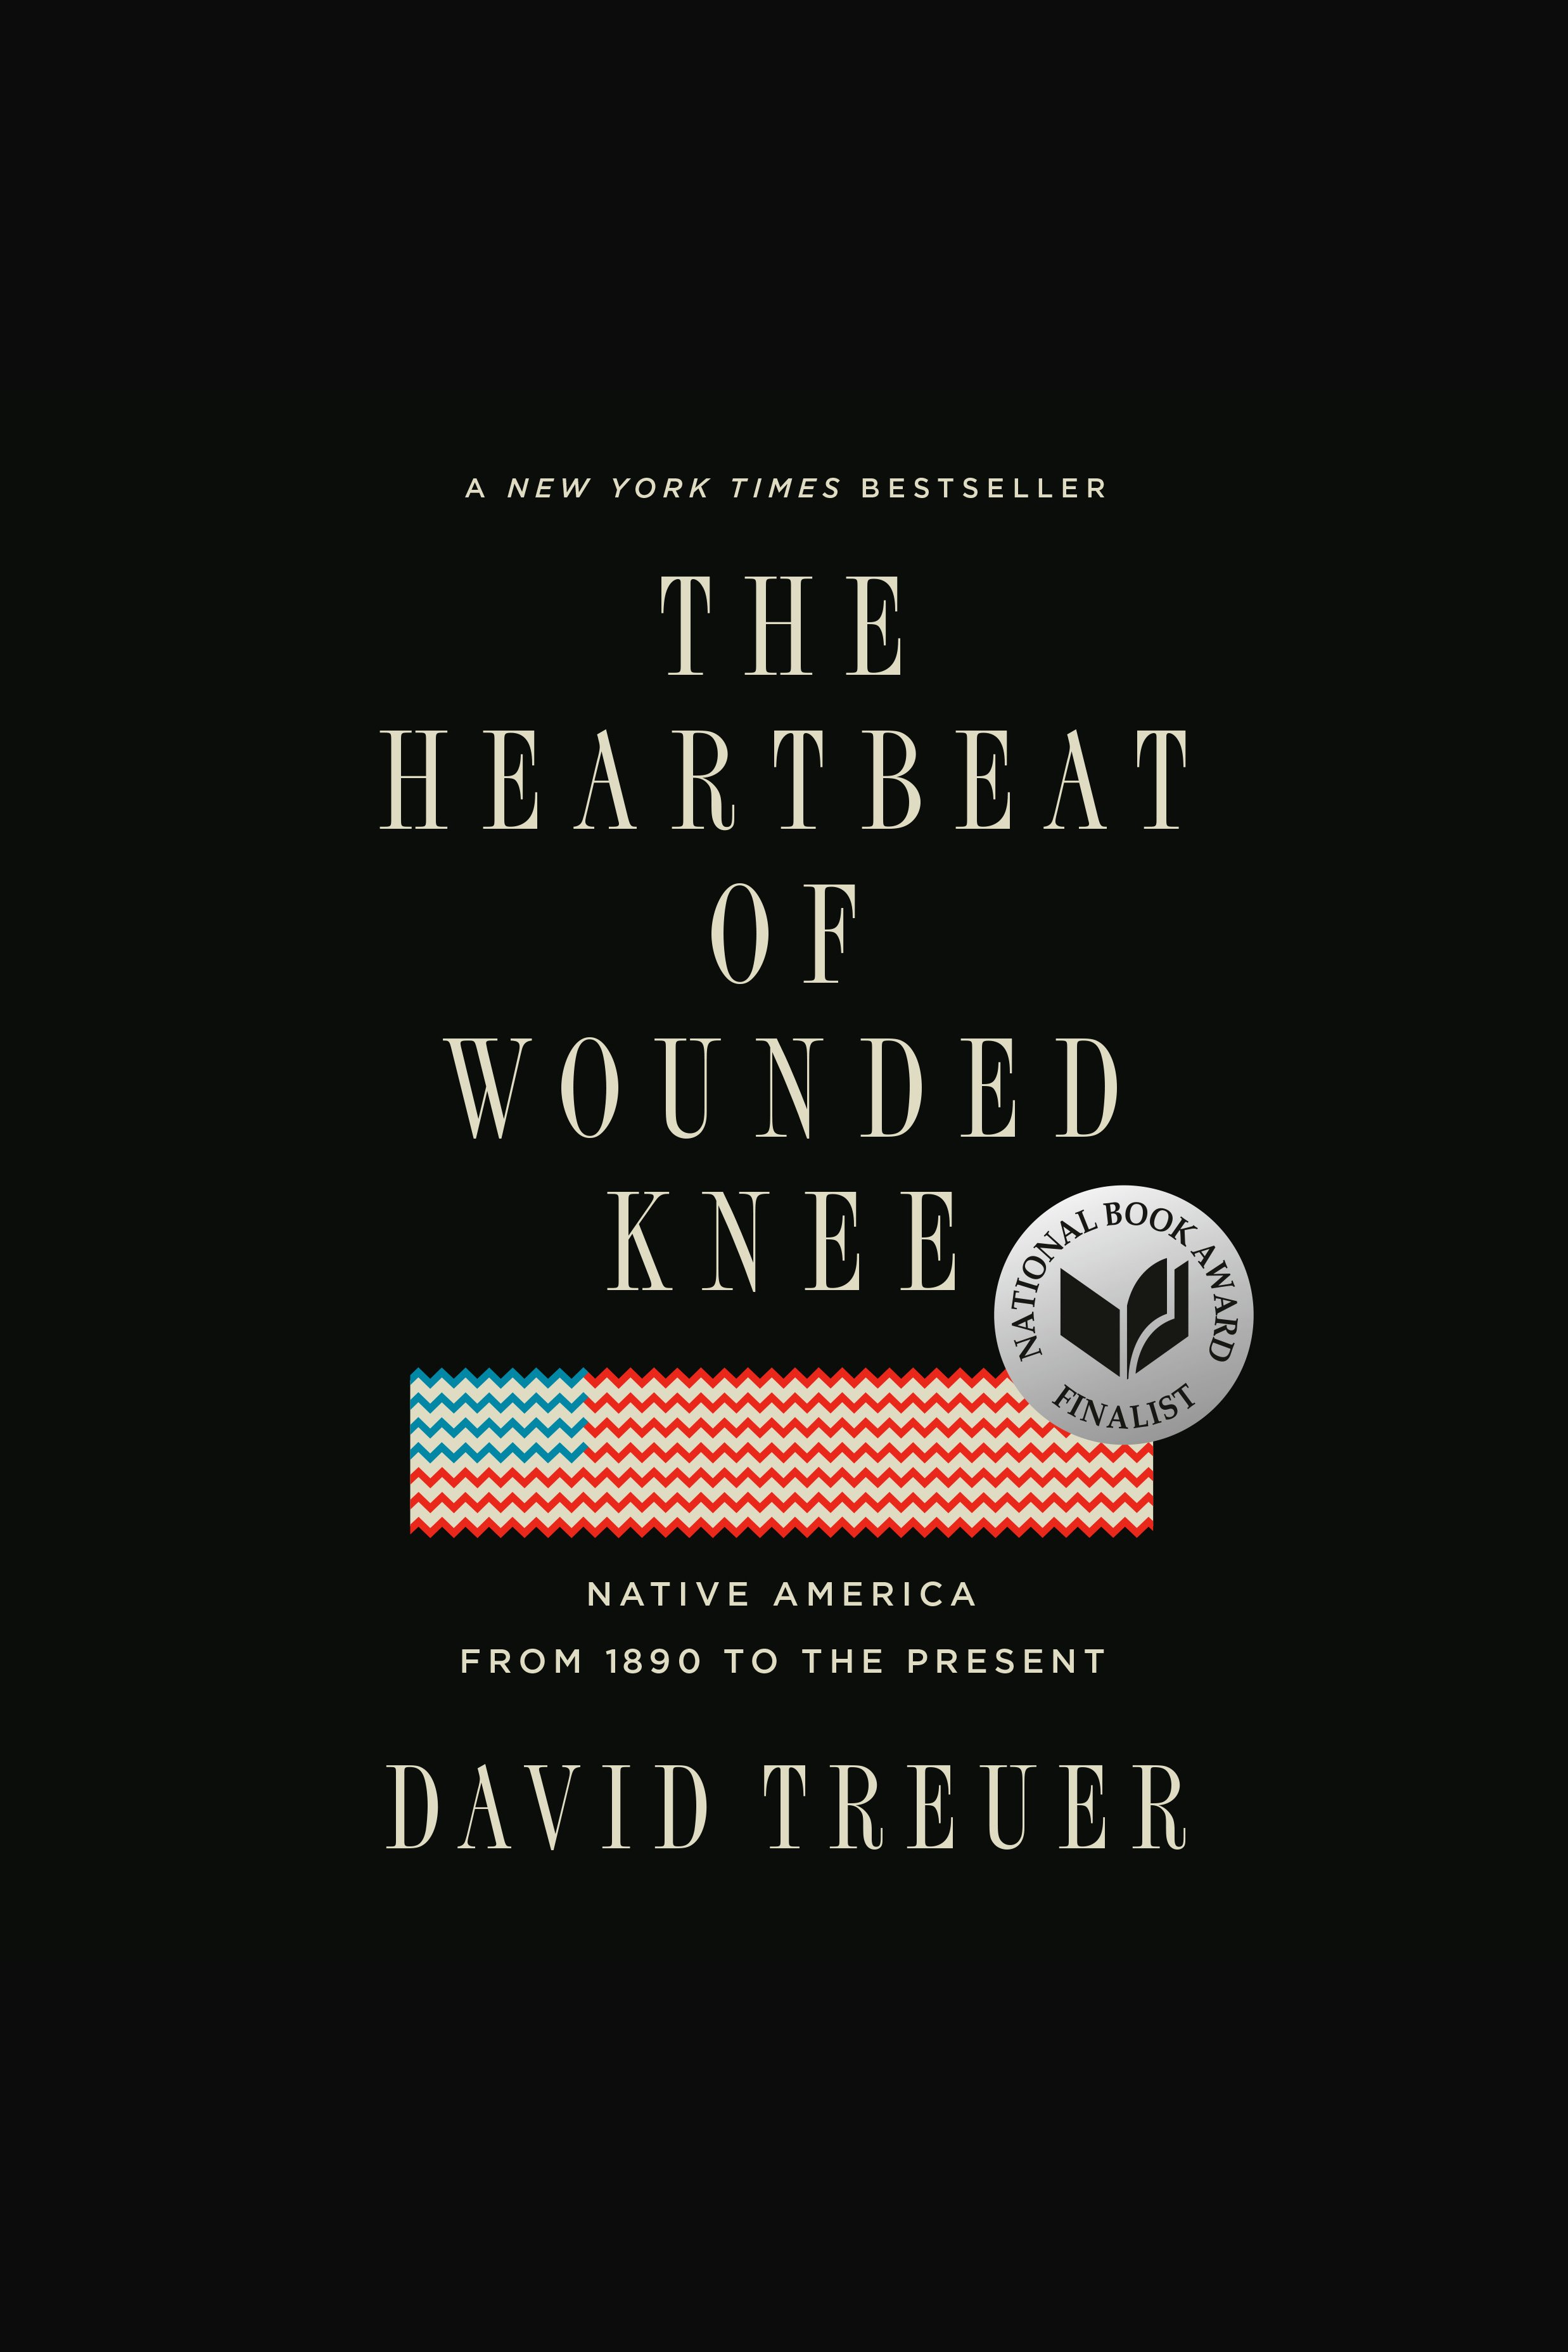 Heartbeat of Wounded Knee, The [electronic resource] : Native America from 1890 to the Present